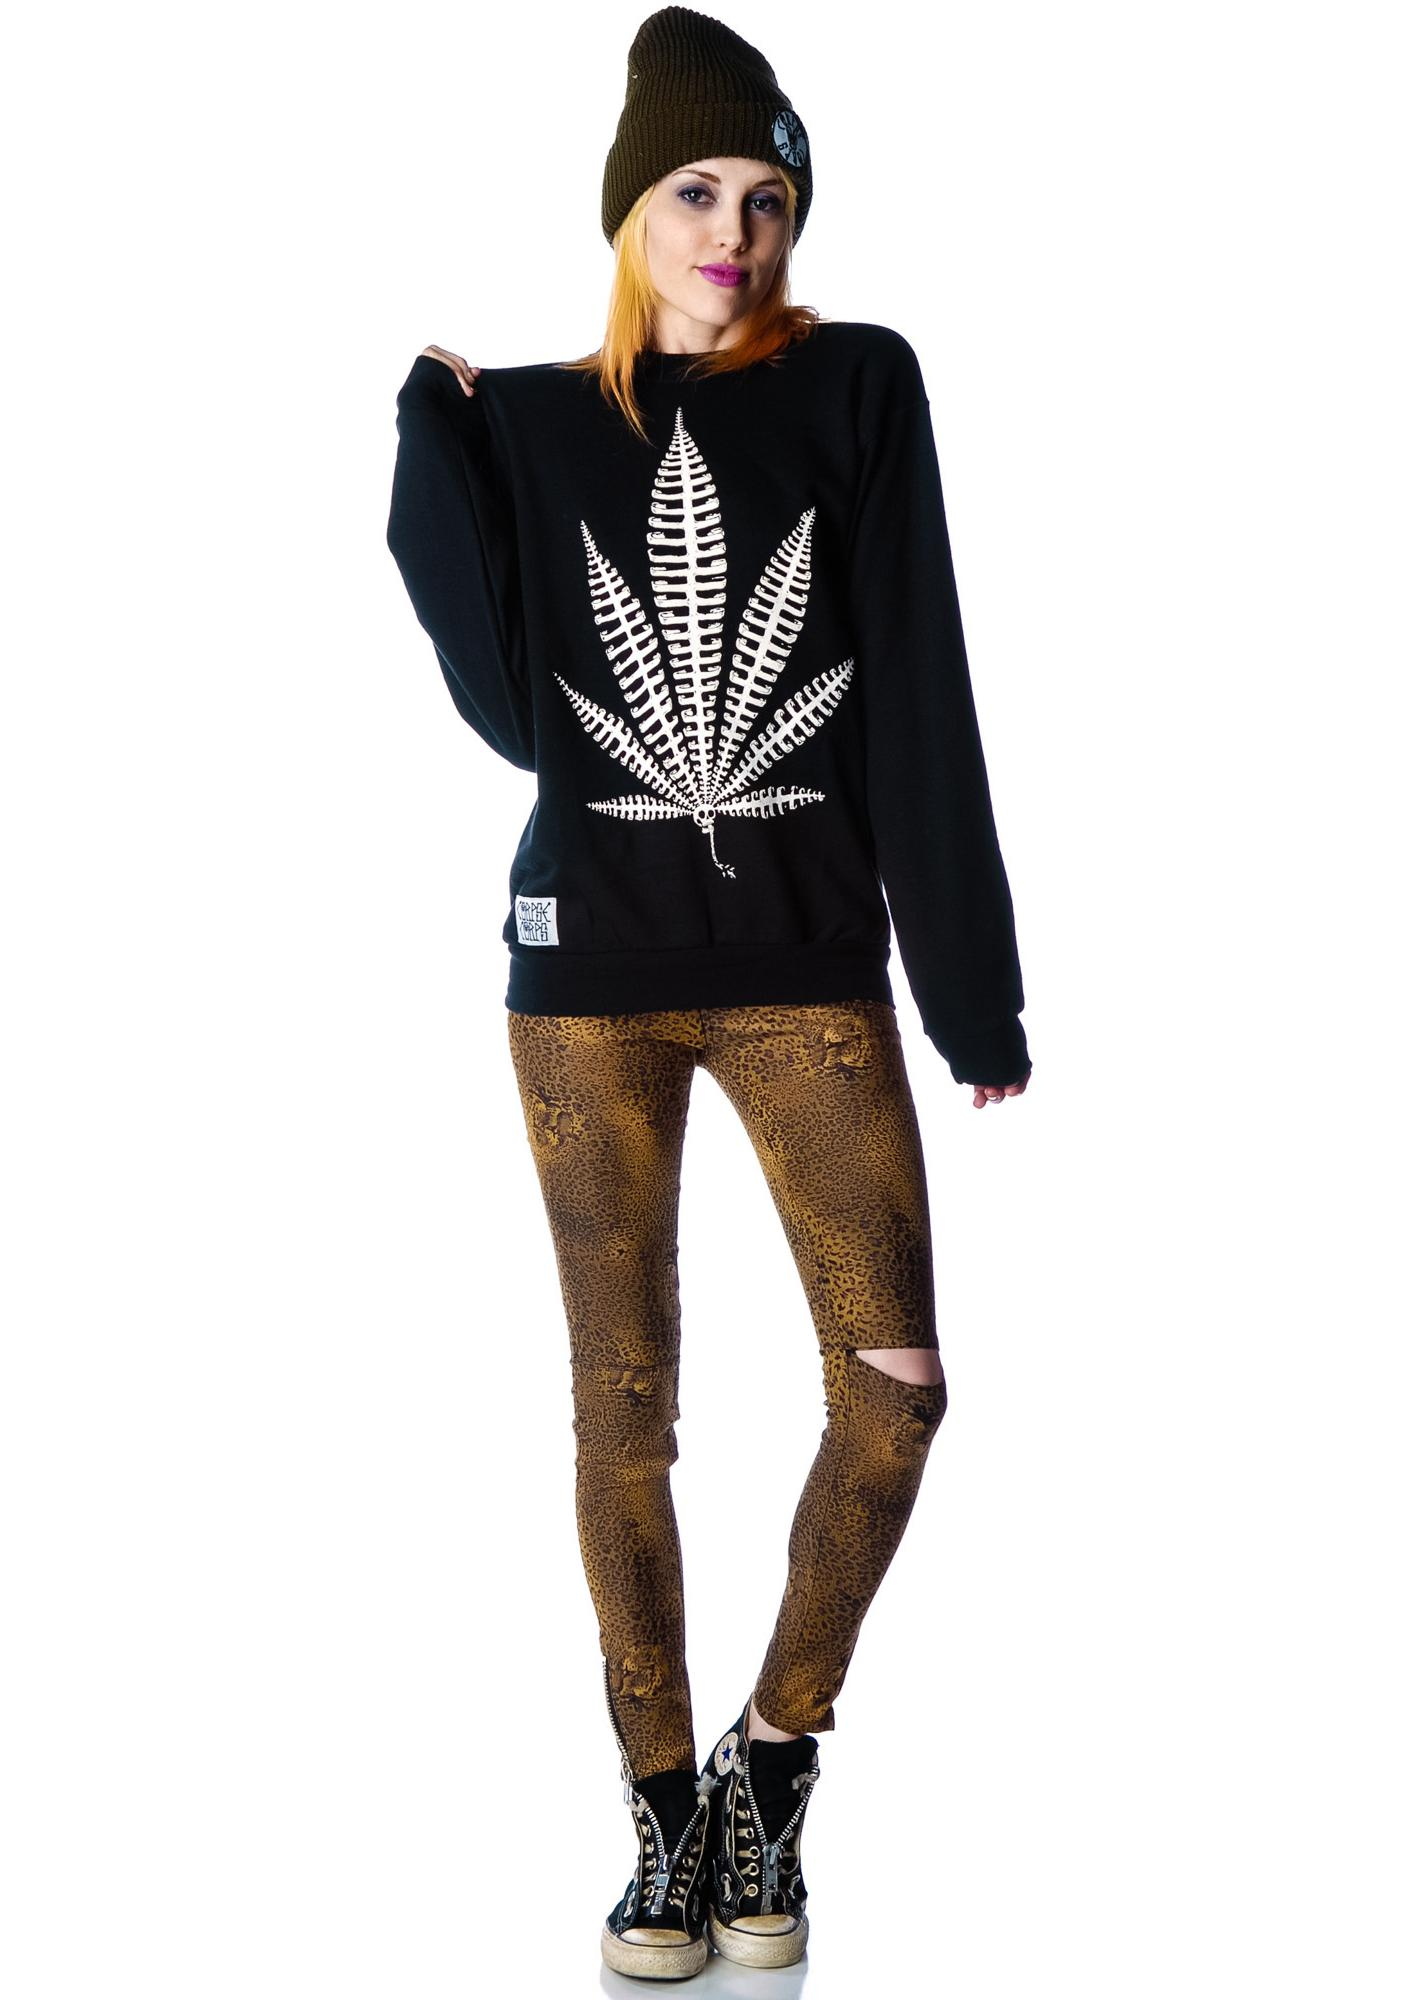 Weed Bone Sweatshirt